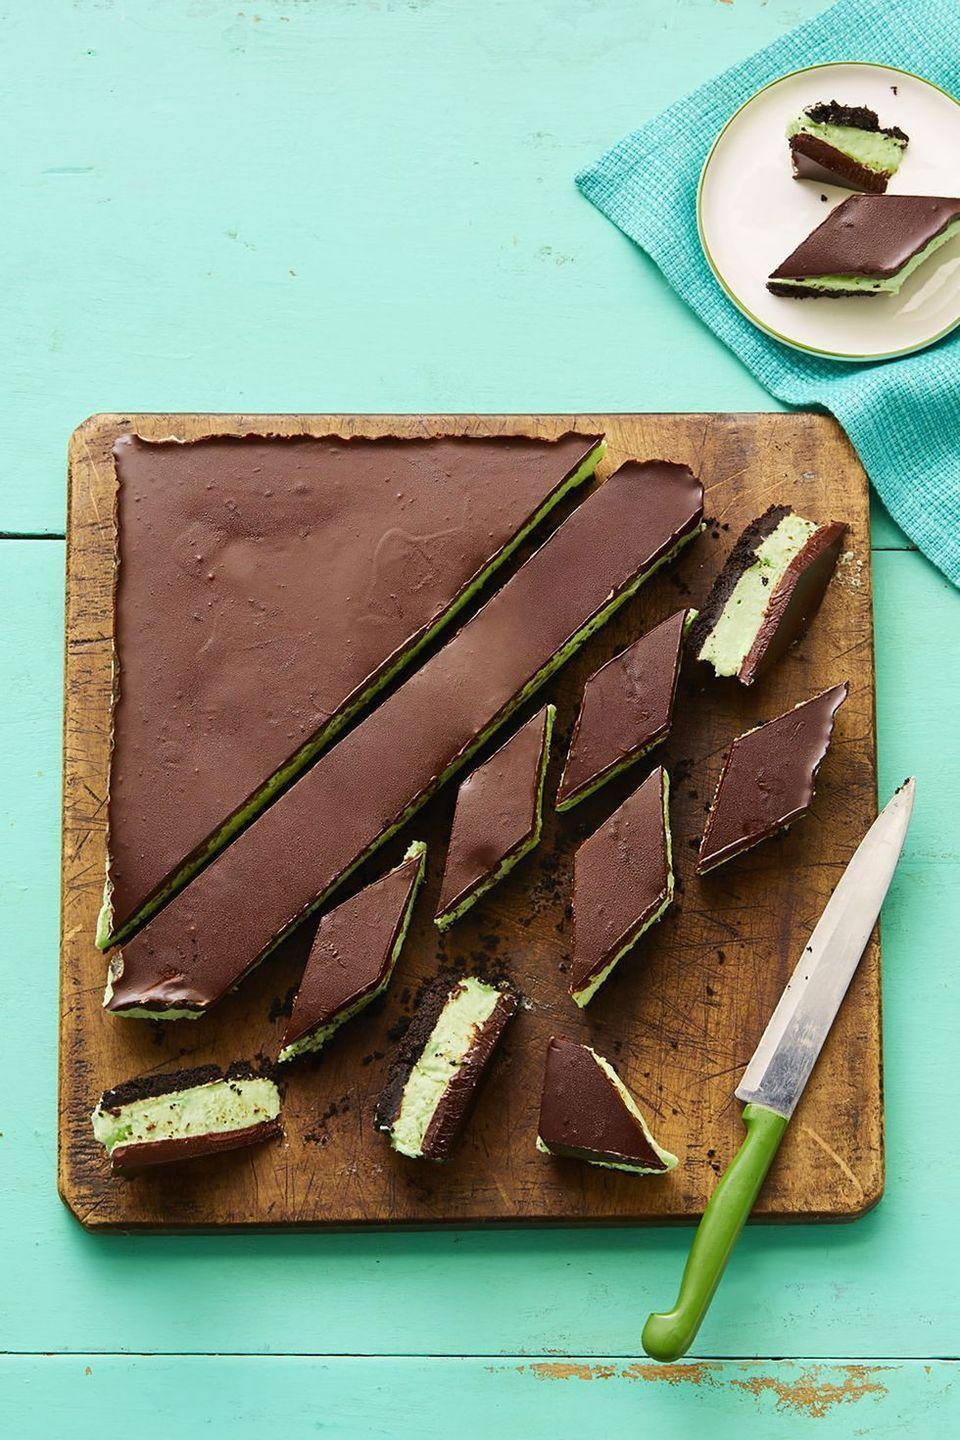 """<p>Make these mint chocolate treats to help guests cool down on a hot summer day, while satisfying their sweet tooth at the same time.</p><p><strong><em><a href=""""https://www.womansday.com/food-recipes/food-drinks/a16810585/grasshopper-bars-recipe/"""" rel=""""nofollow noopener"""" target=""""_blank"""" data-ylk=""""slk:Get the Grasshopper Bars recipe."""" class=""""link rapid-noclick-resp"""">Get the Grasshopper Bars recipe. </a></em></strong><br></p>"""